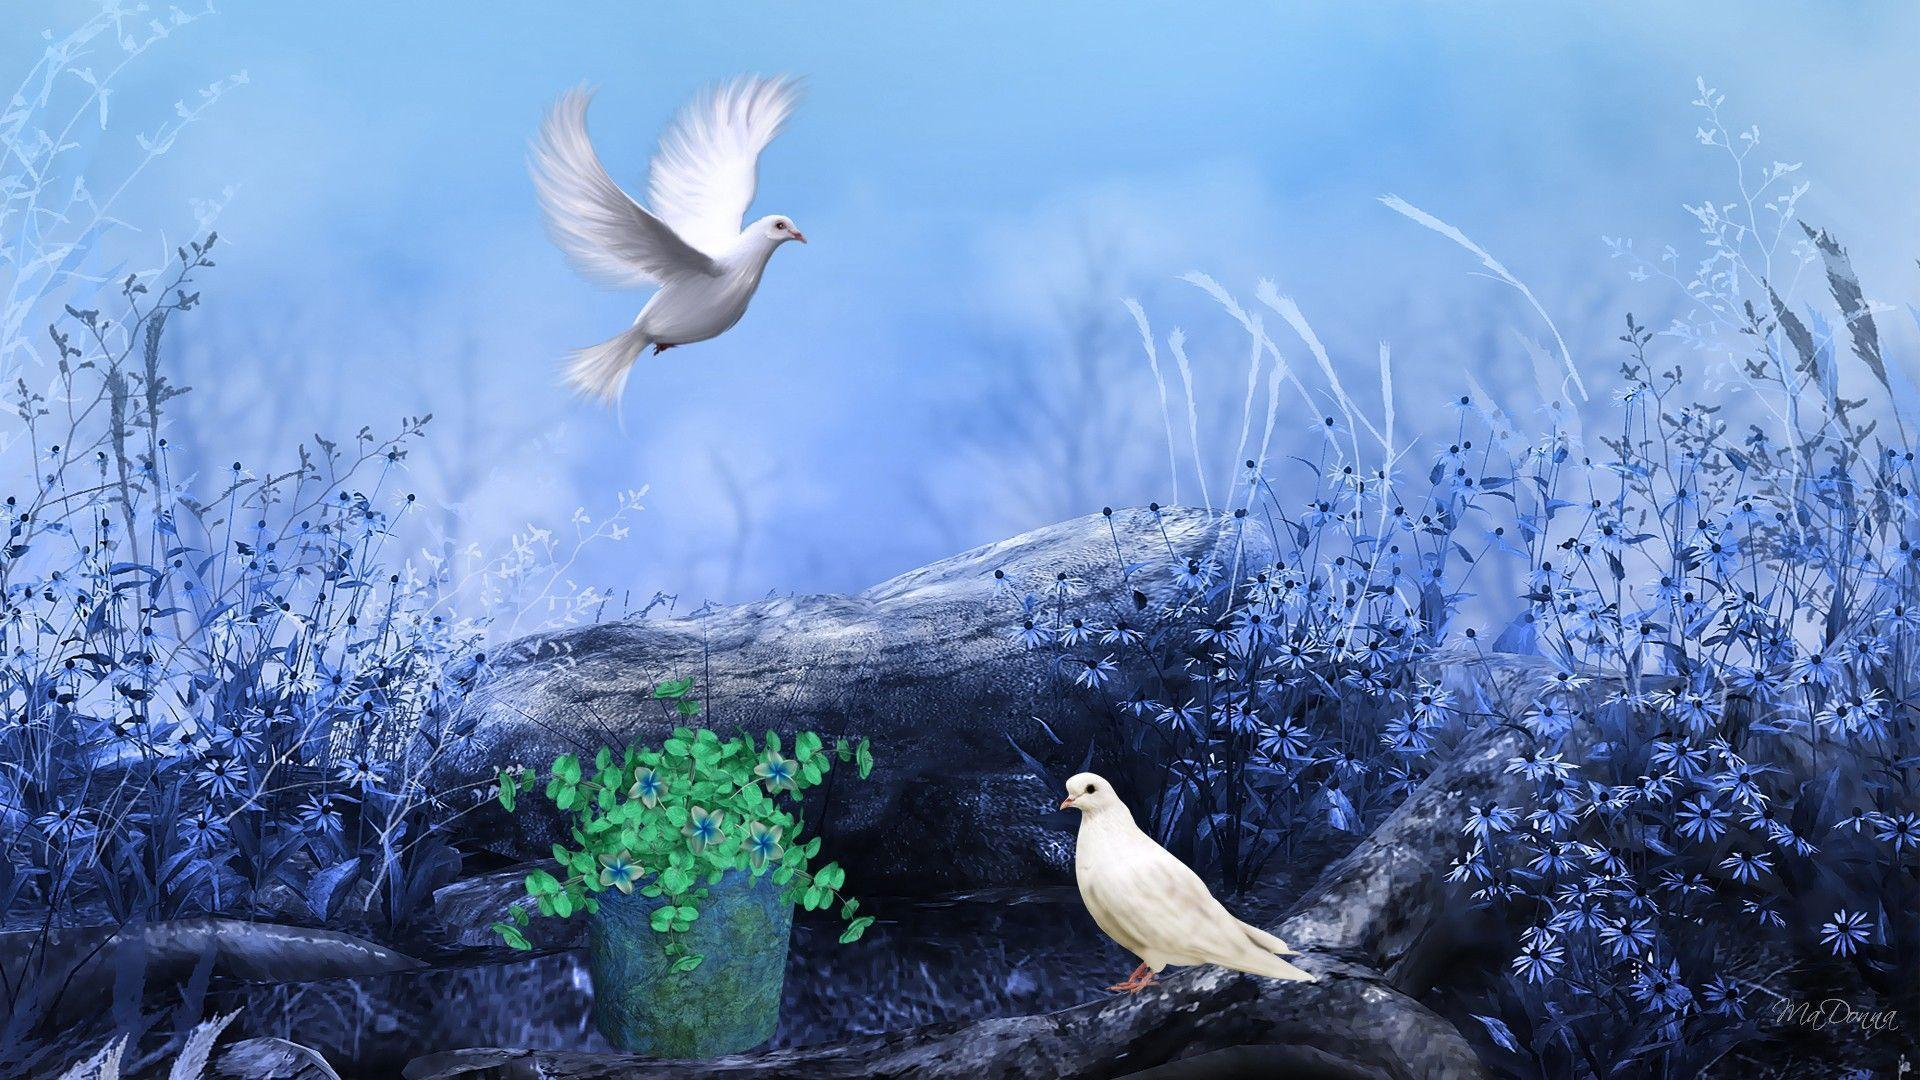 Peace wallpapers wallpaper cave - Peaceful background images ...